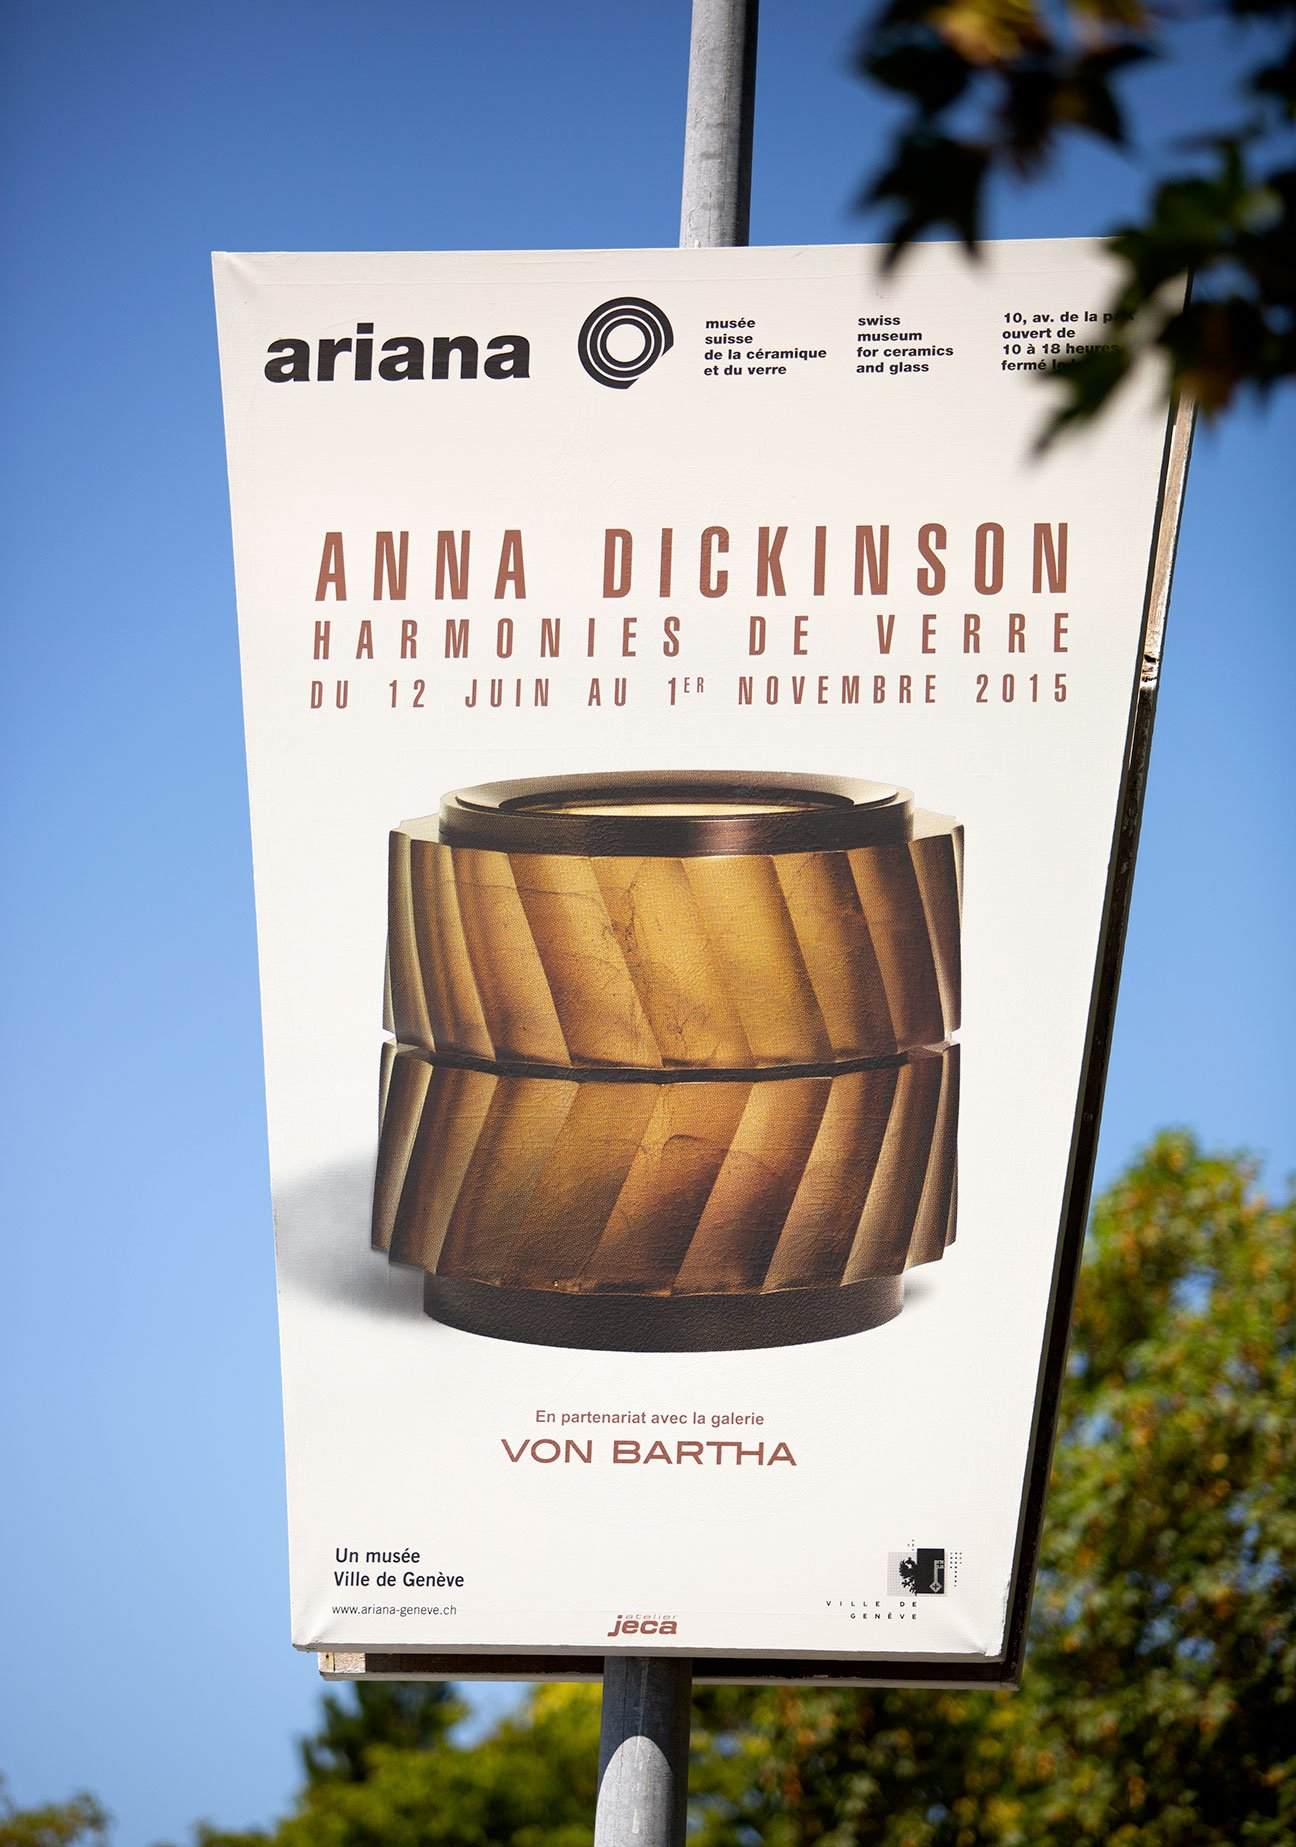 Fabiencuffel_agence_communication_photographie_edition_graphisme_geneve_paris_ARIANA_expo_ana_dickinson_4